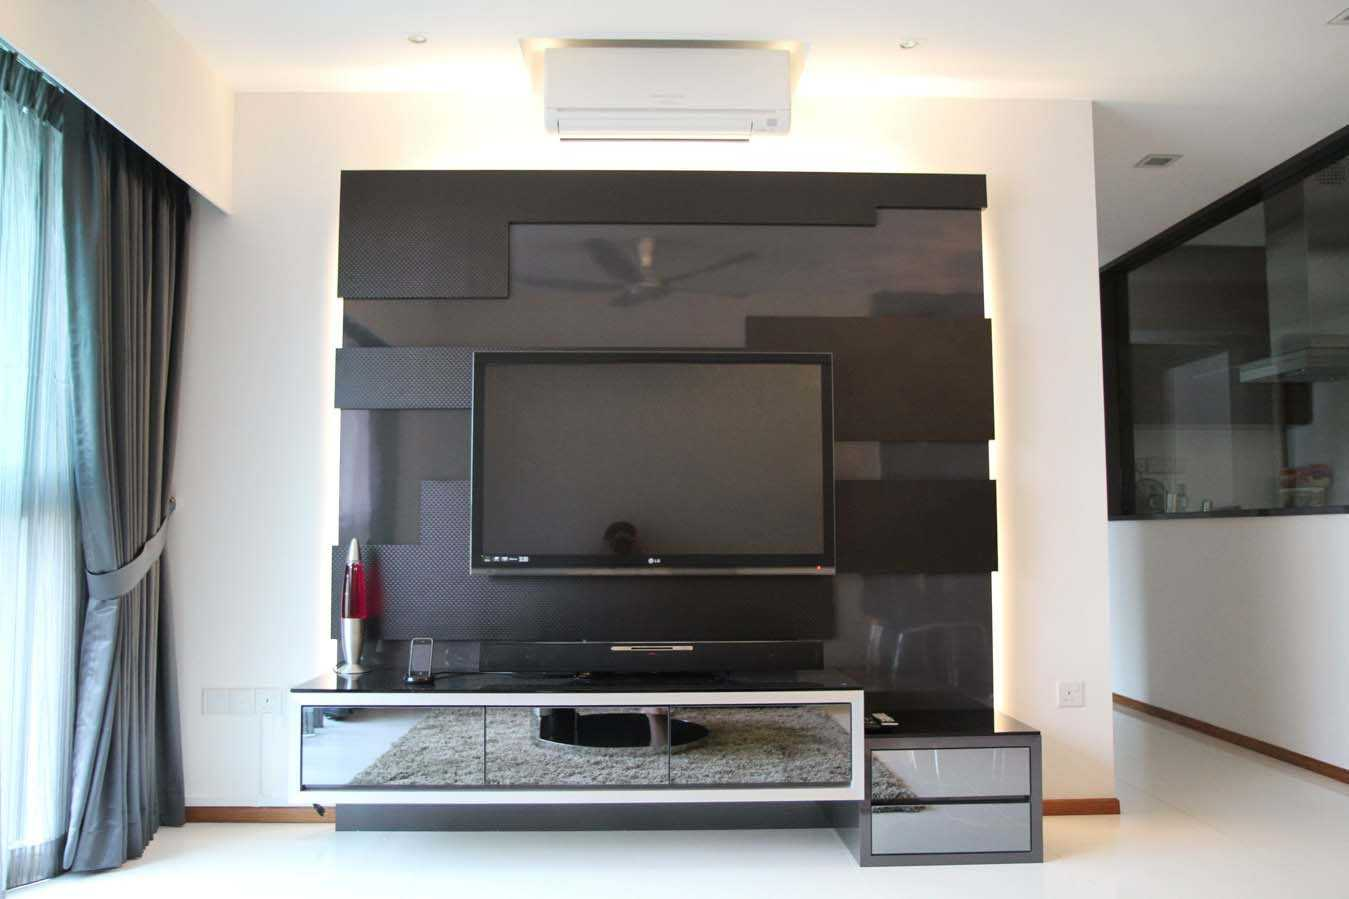 Emejing Tv Unit Design Ideas Photos Home Design Ideas nishiheicom